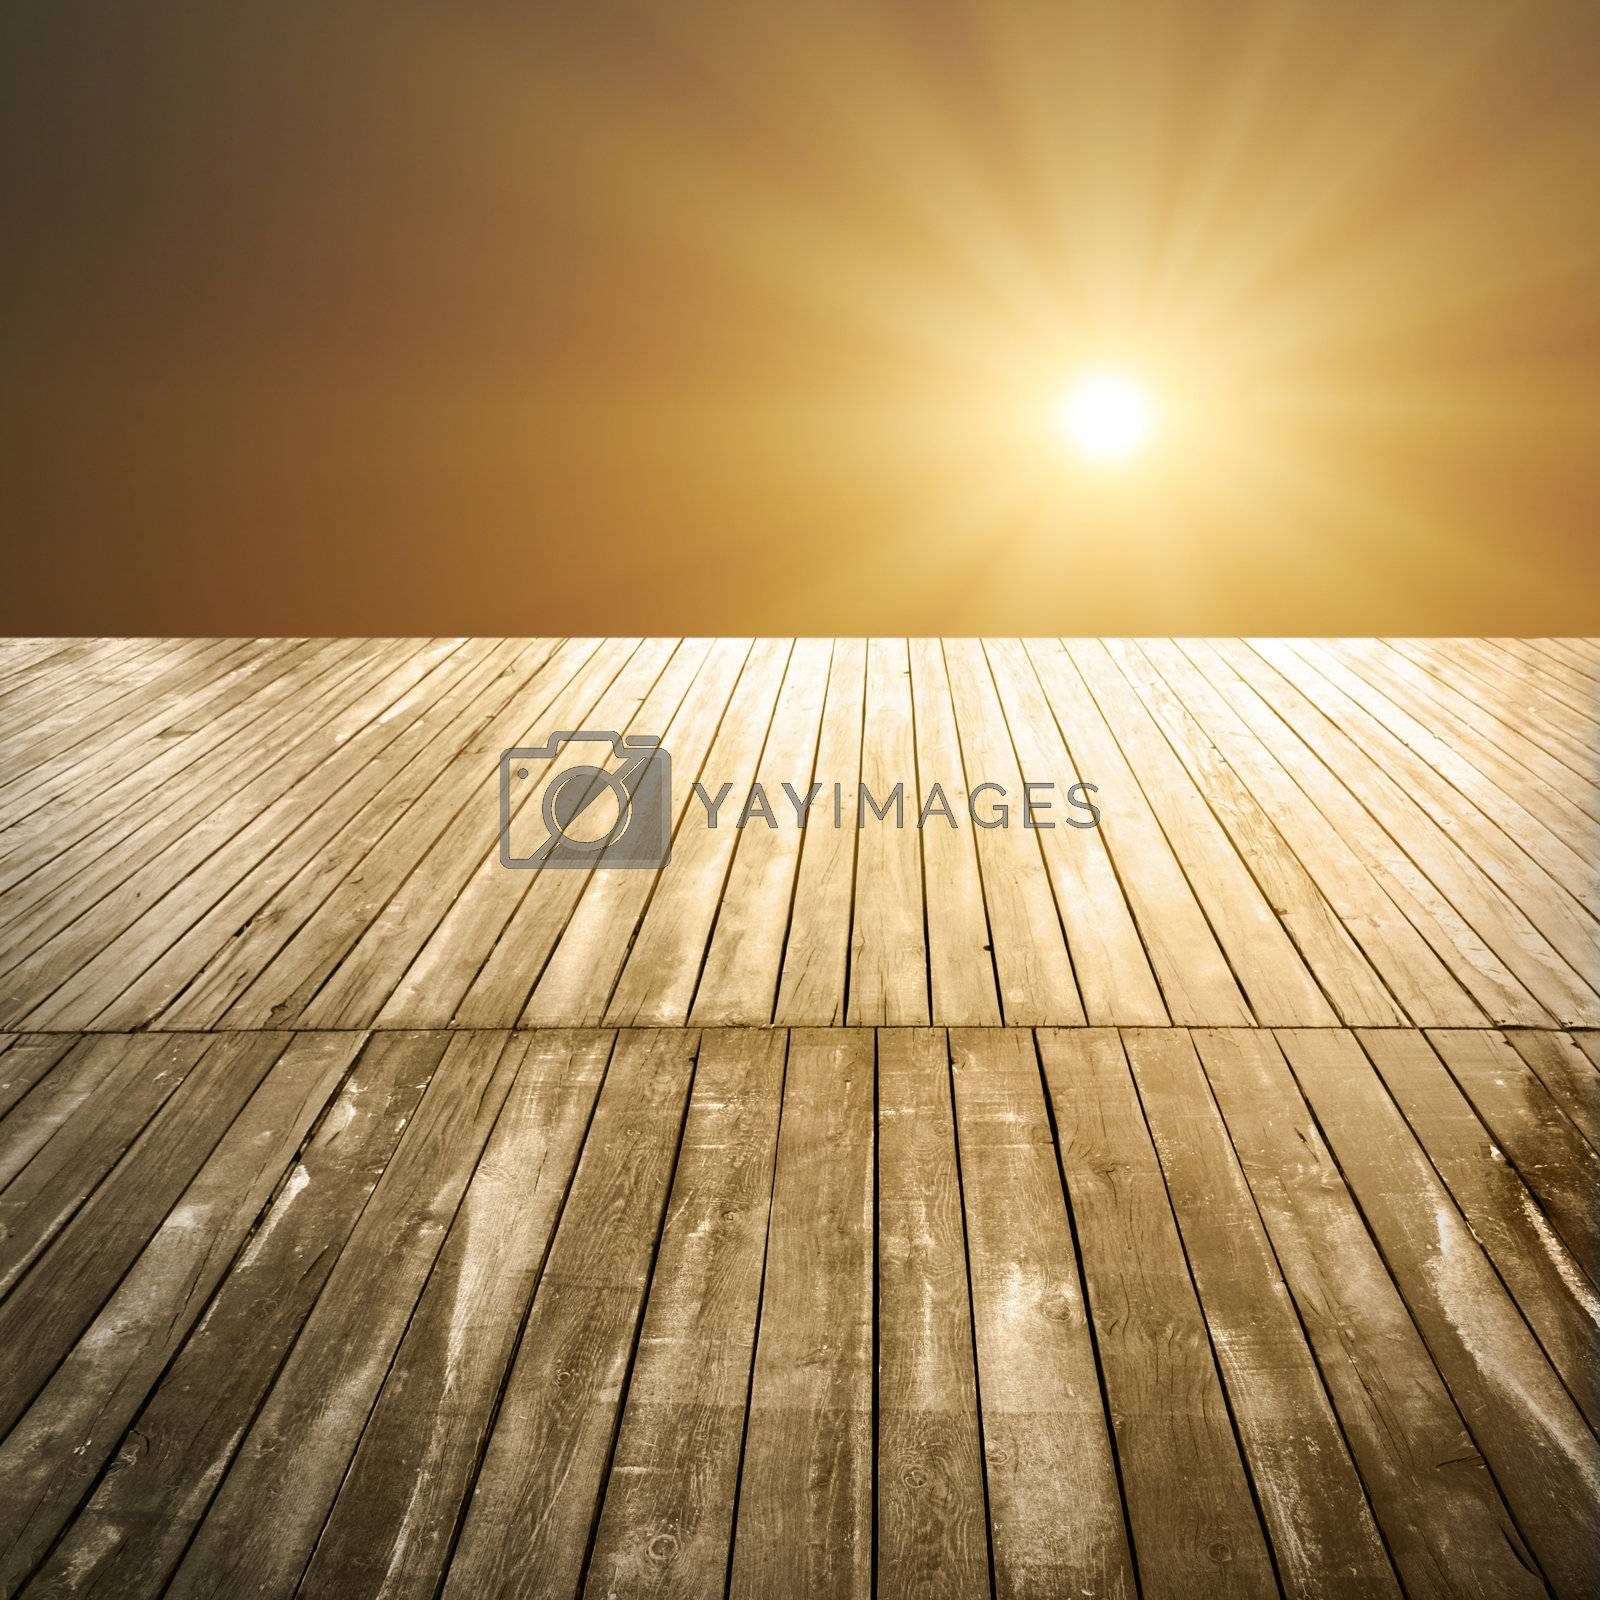 sunset or sunrise on a wooden pier